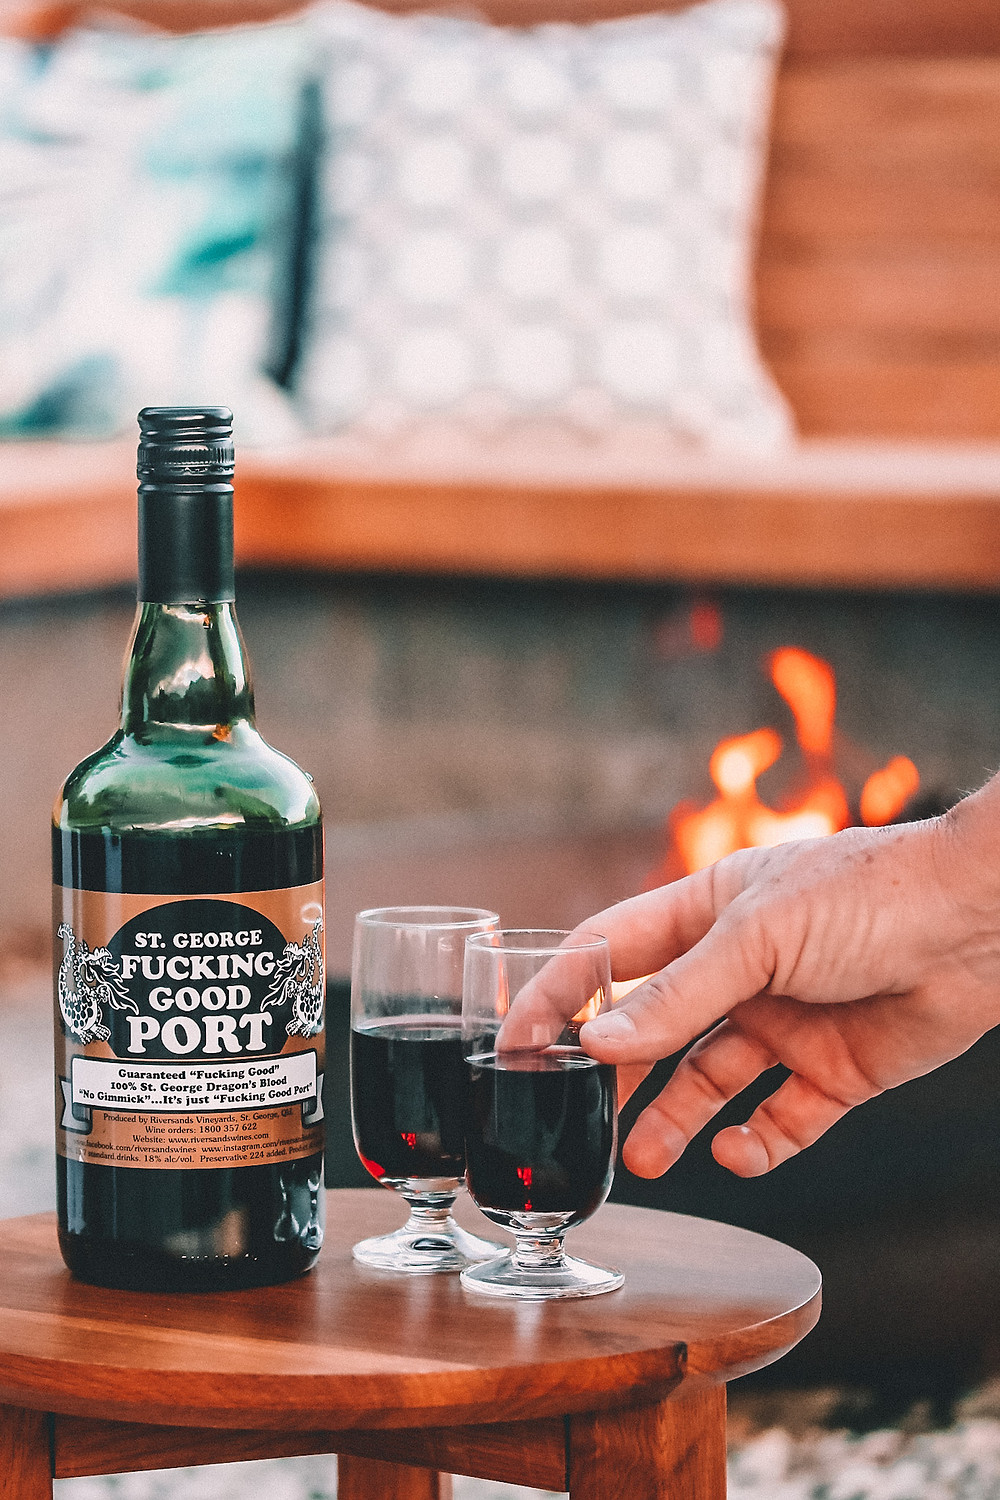 A bottle of port and two glasses by the fire